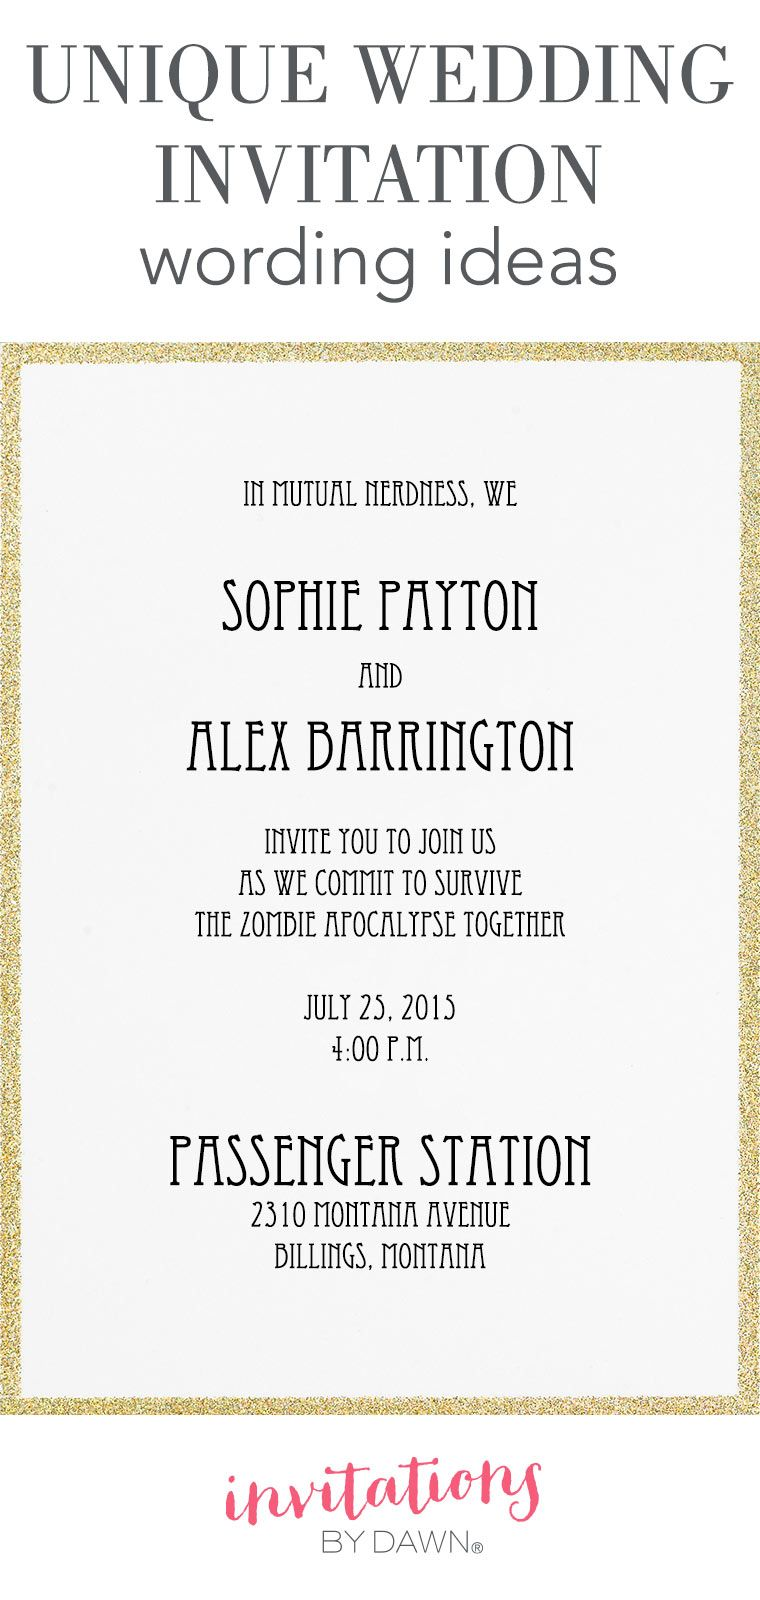 wedding invitation language a wedding is a special occasion that